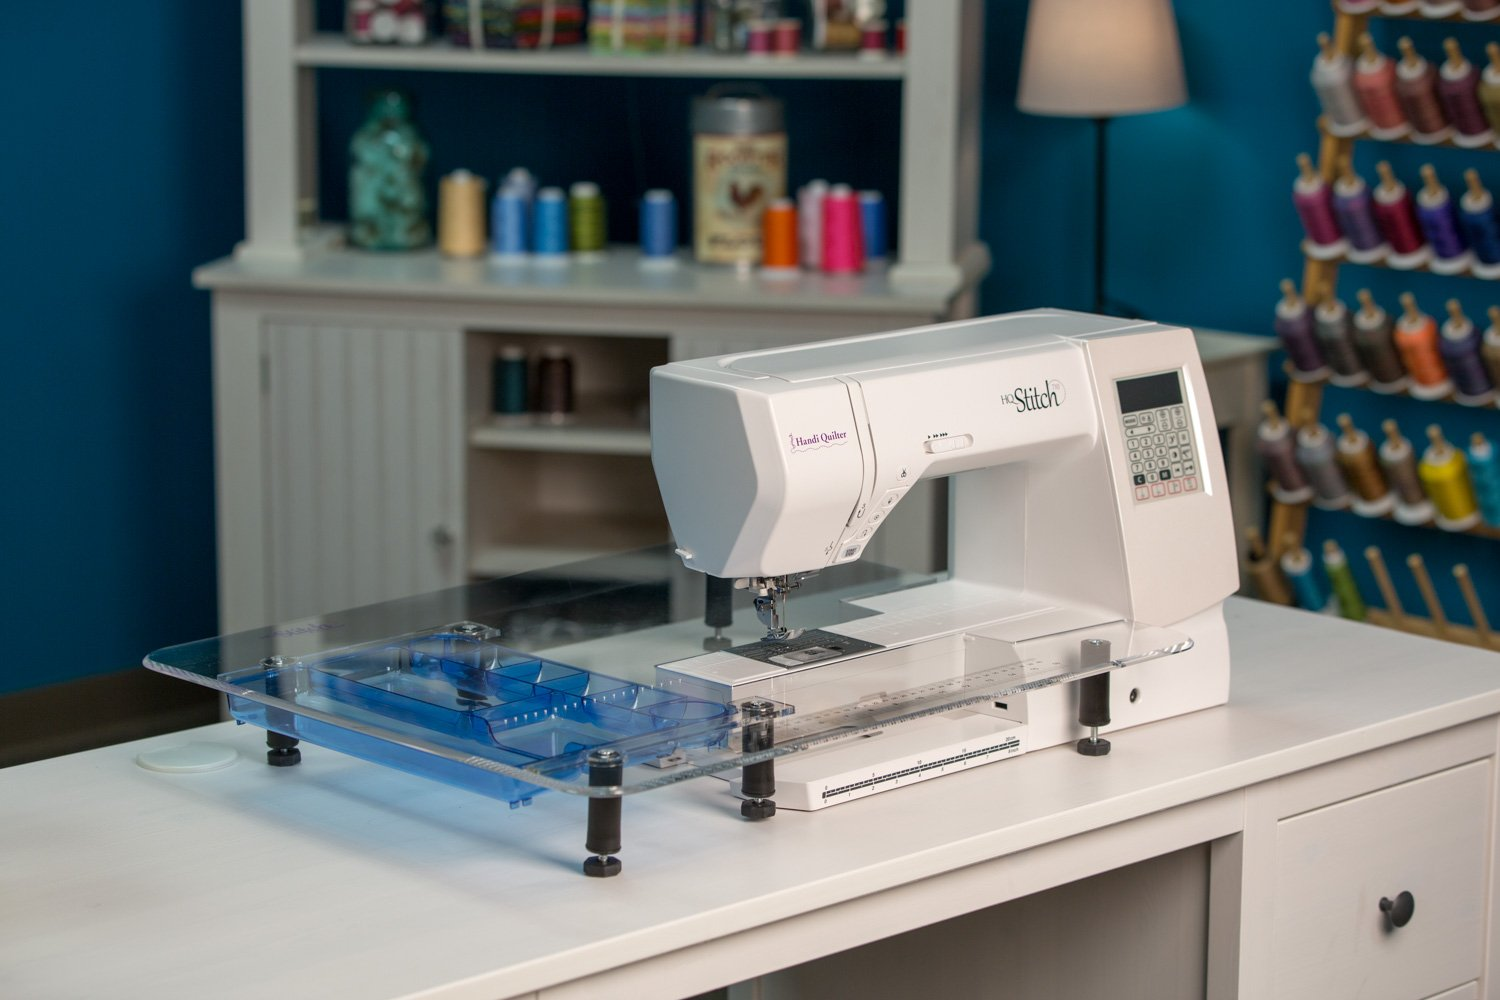 HQ Stitch 710 Extension Table from Sew Steady